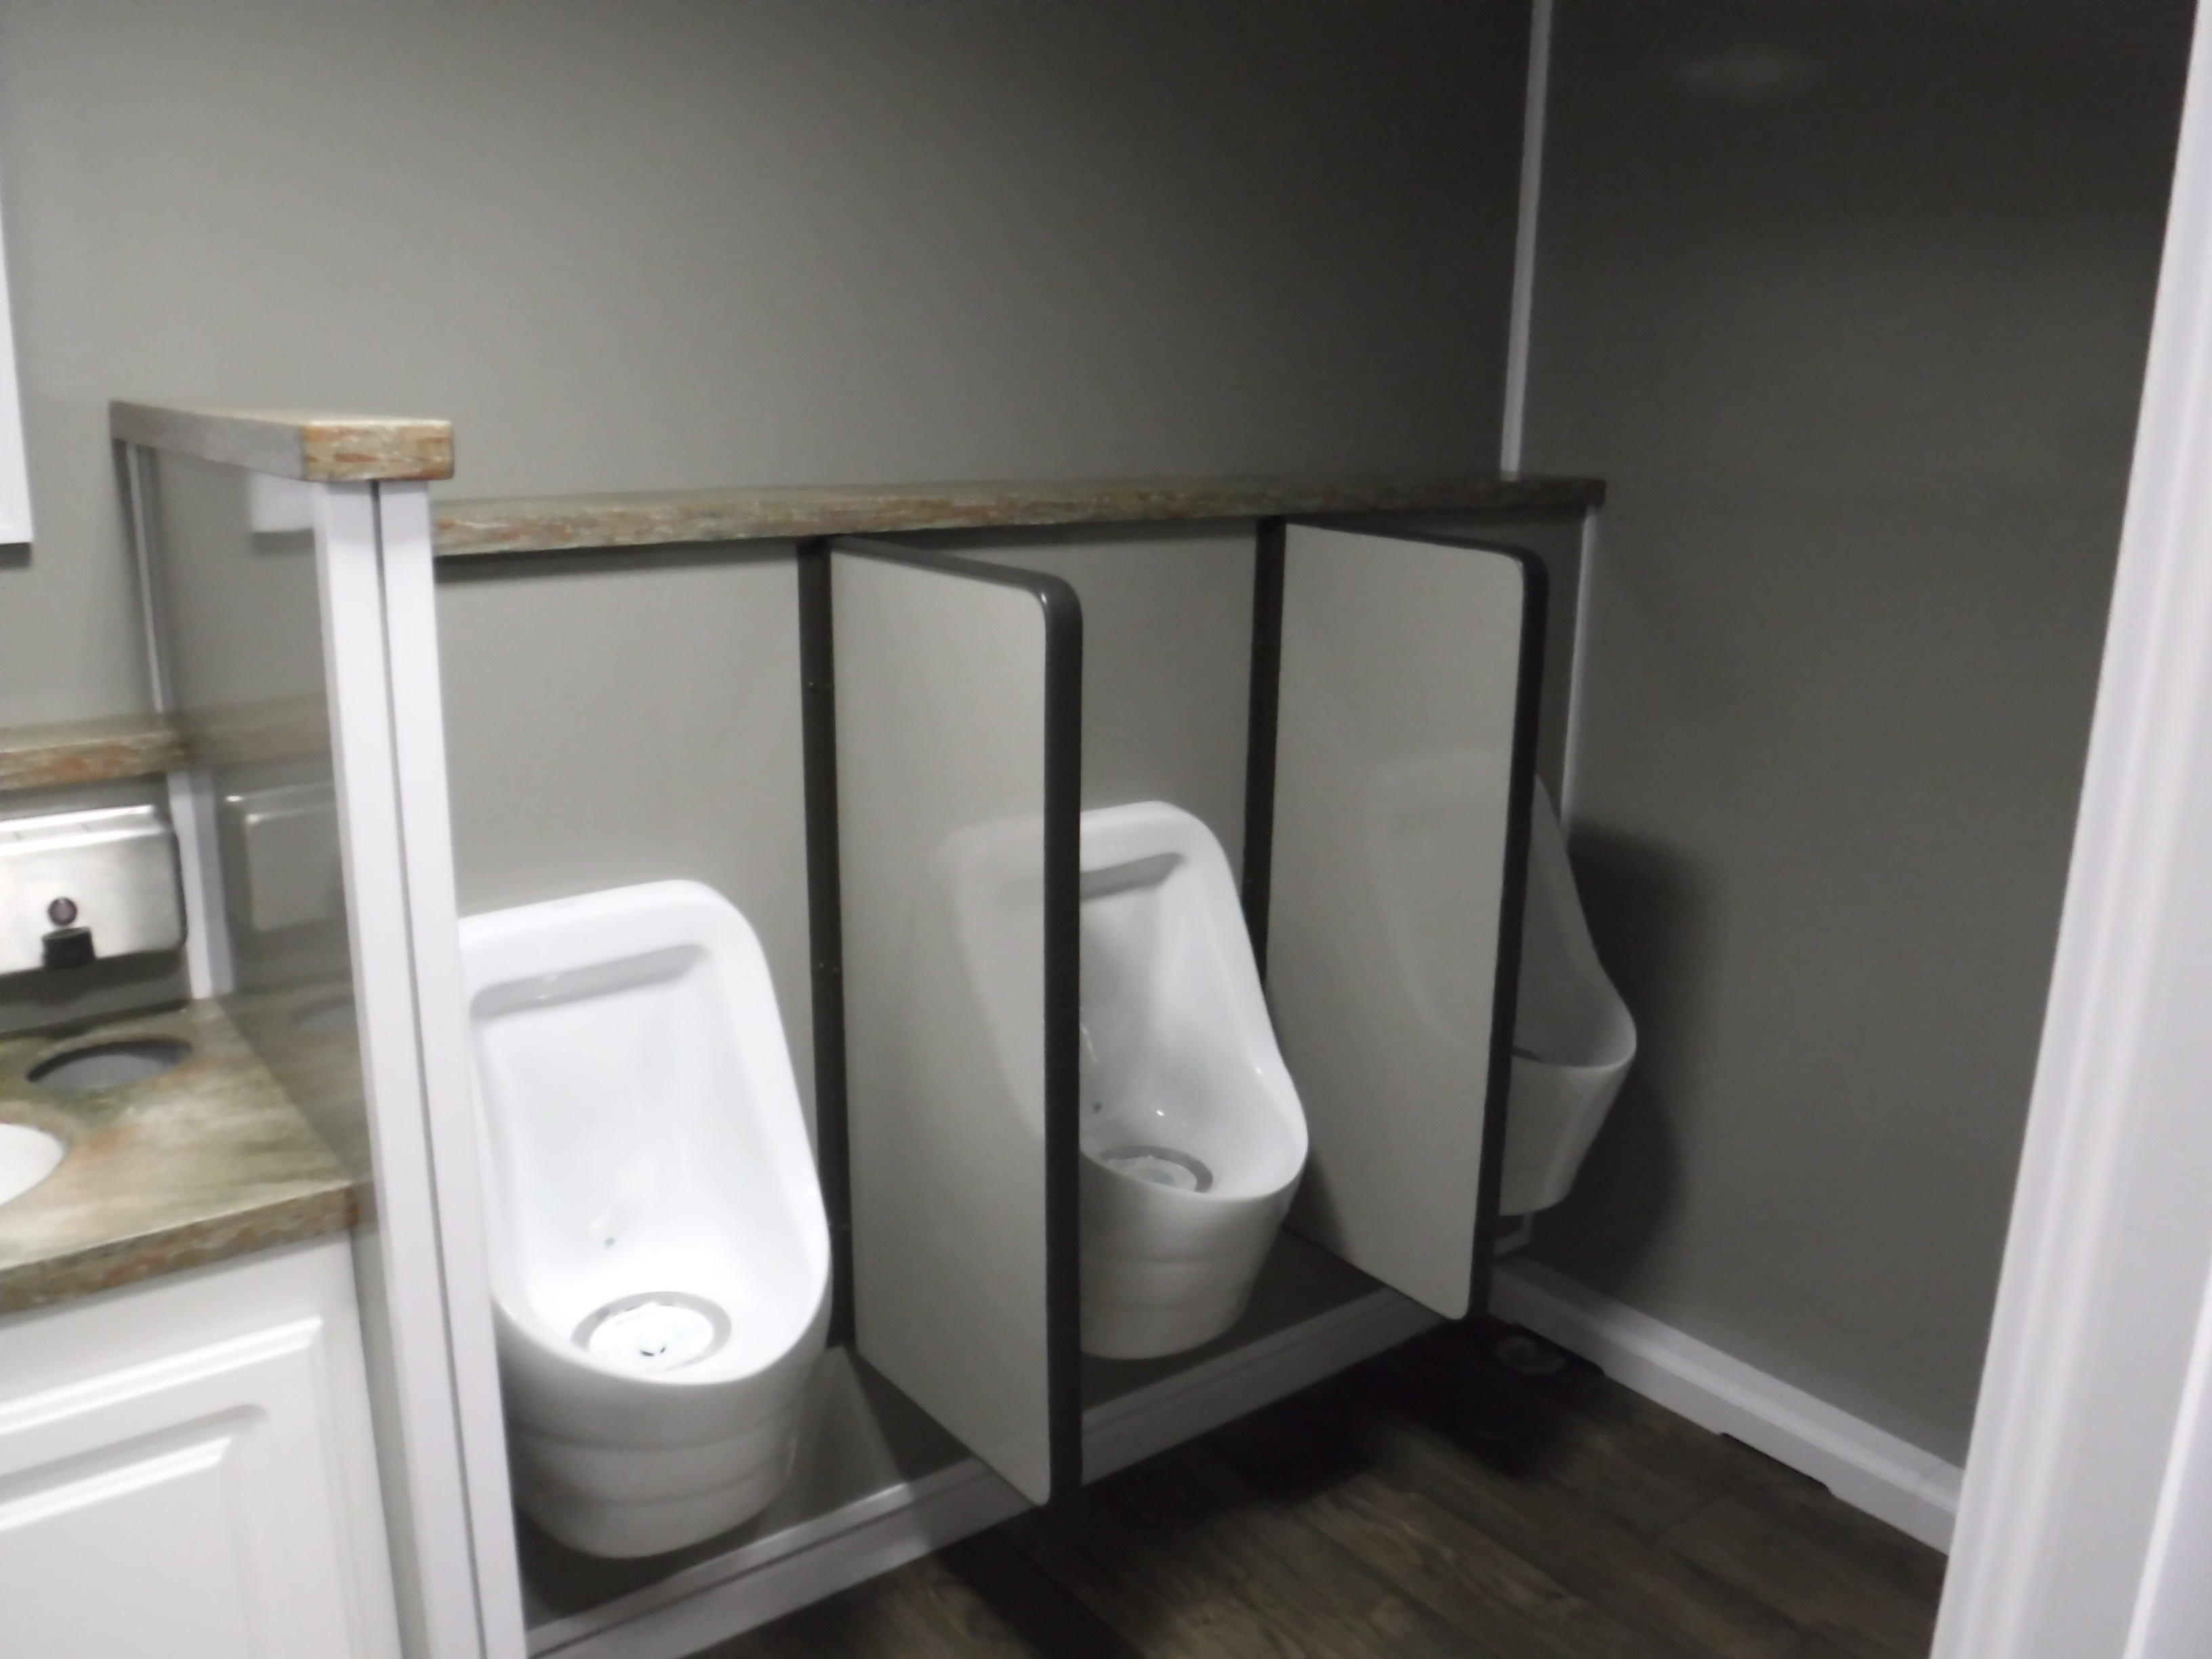 bathroom carrier portfolio toilet option with trailers frame portable